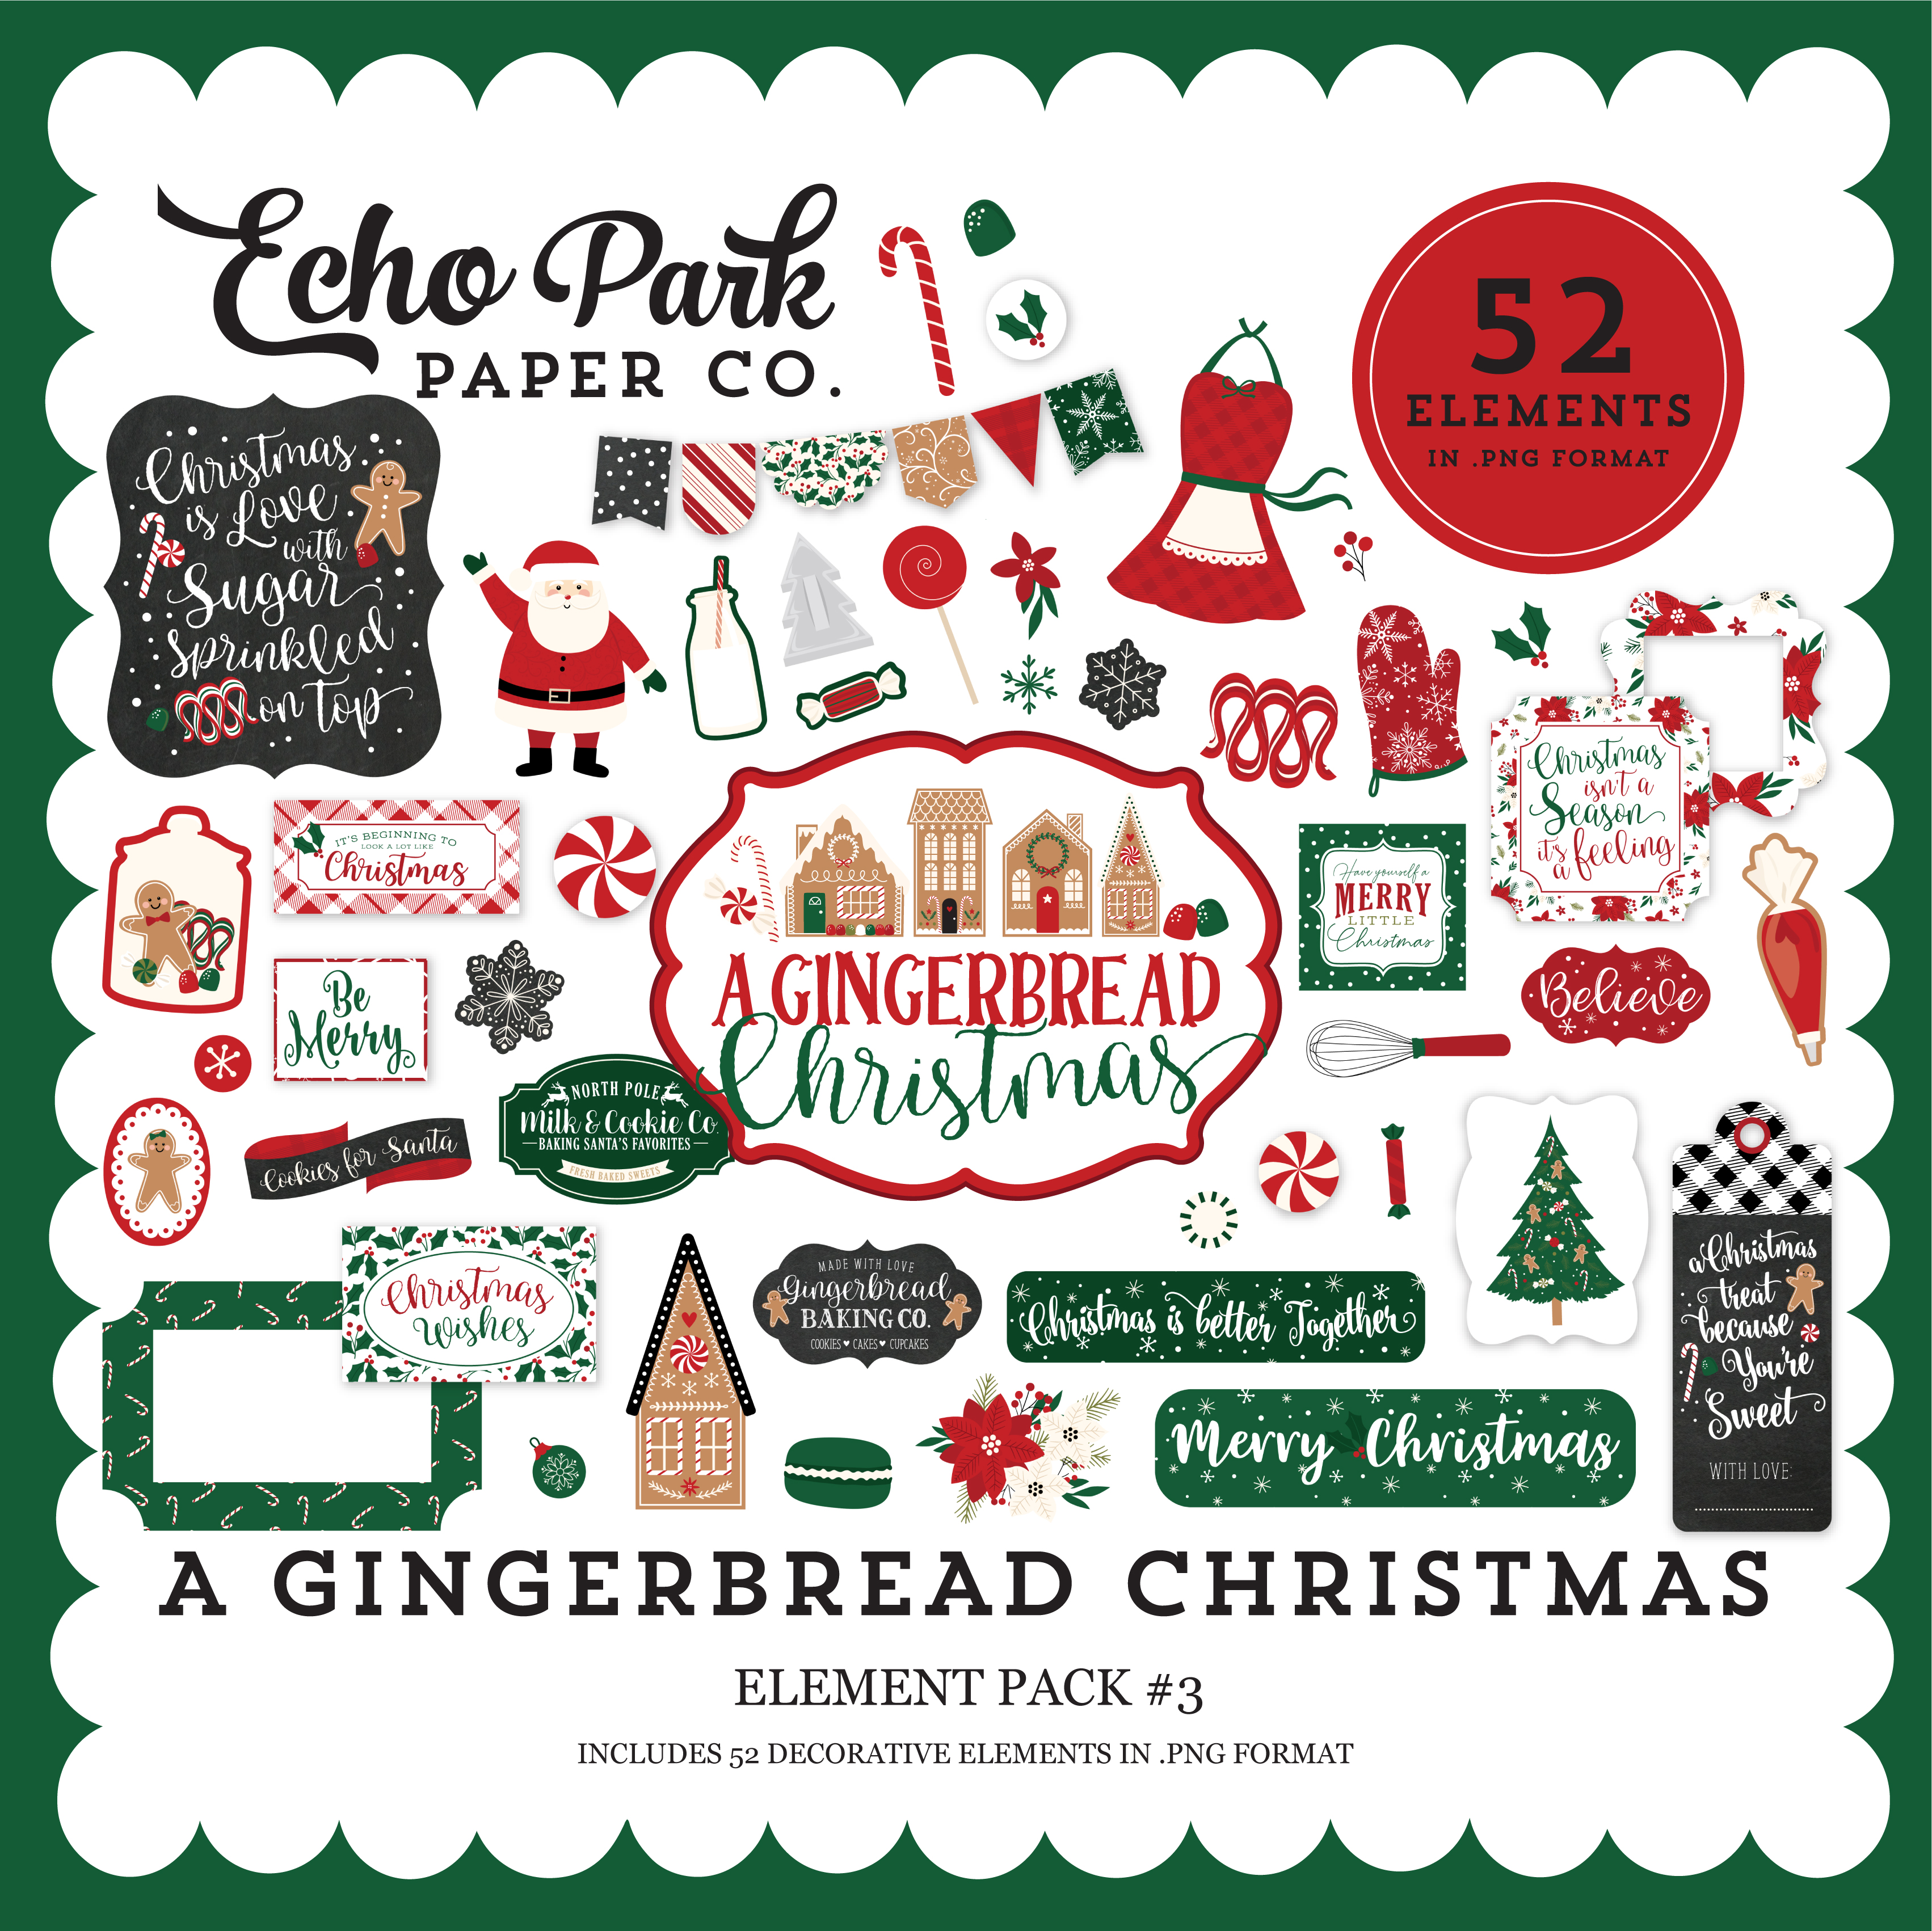 A Gingerbread Christmas Element Pack #3